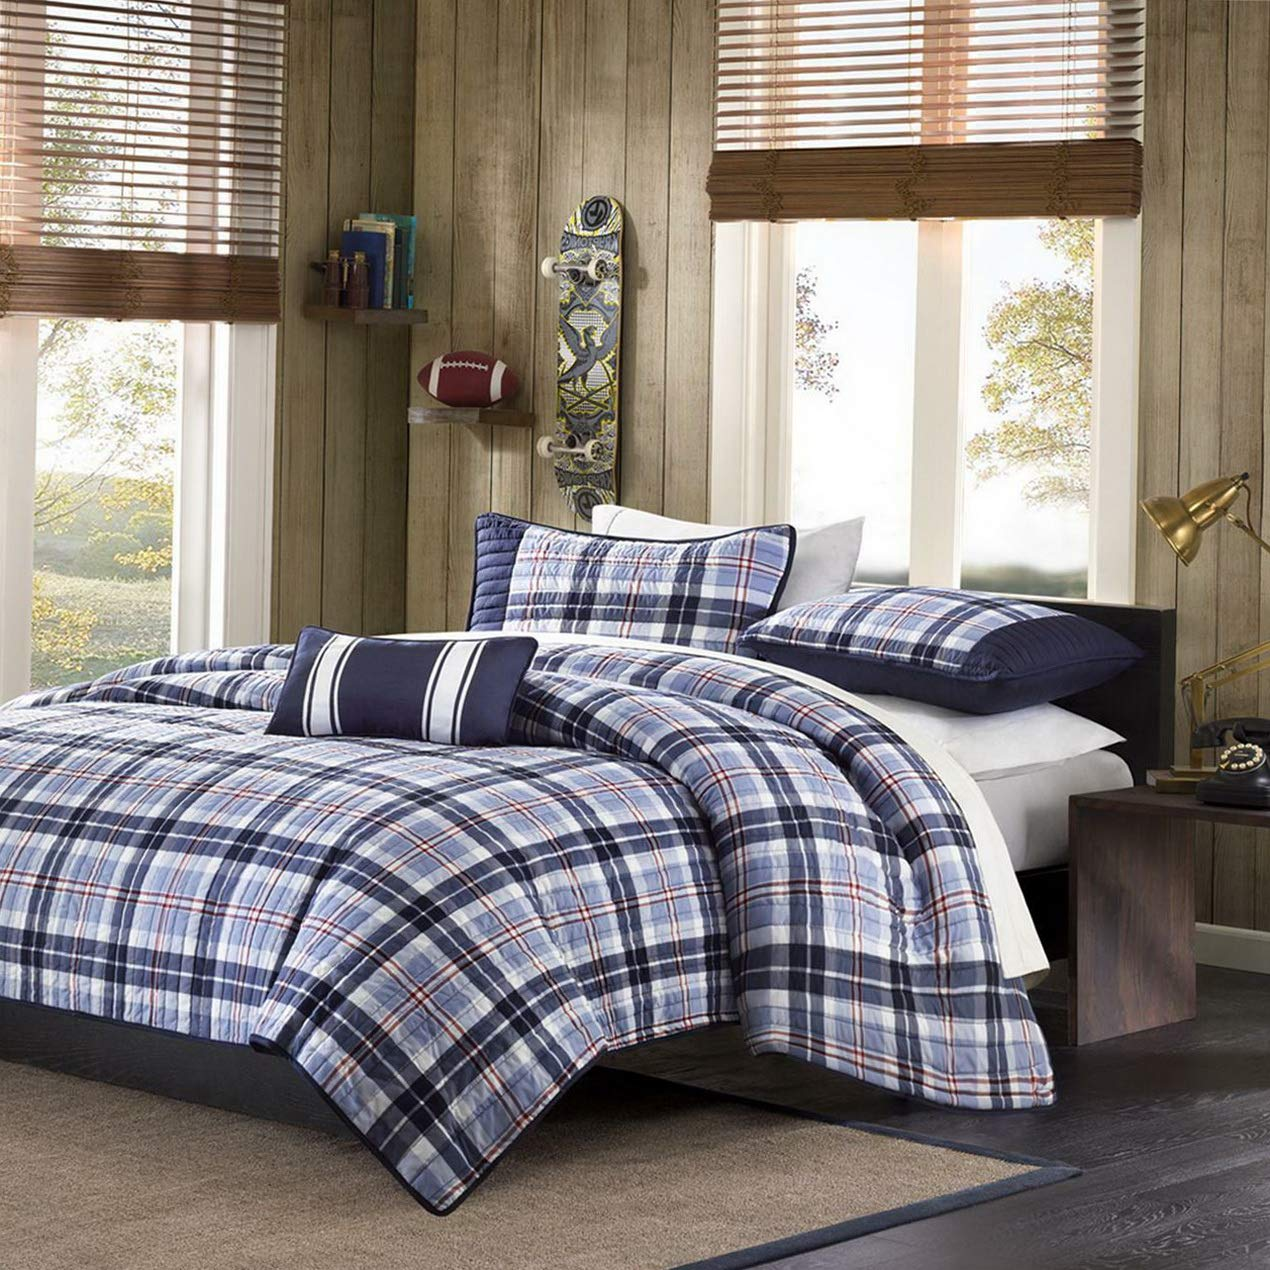 Kaputar Modern Blue RED Navy Sporty Boys Plaid Stripe Textured Quilt Set W/Pillow | Model CMFRTRSTS - 4119 | Twin by Kaputar (Image #1)